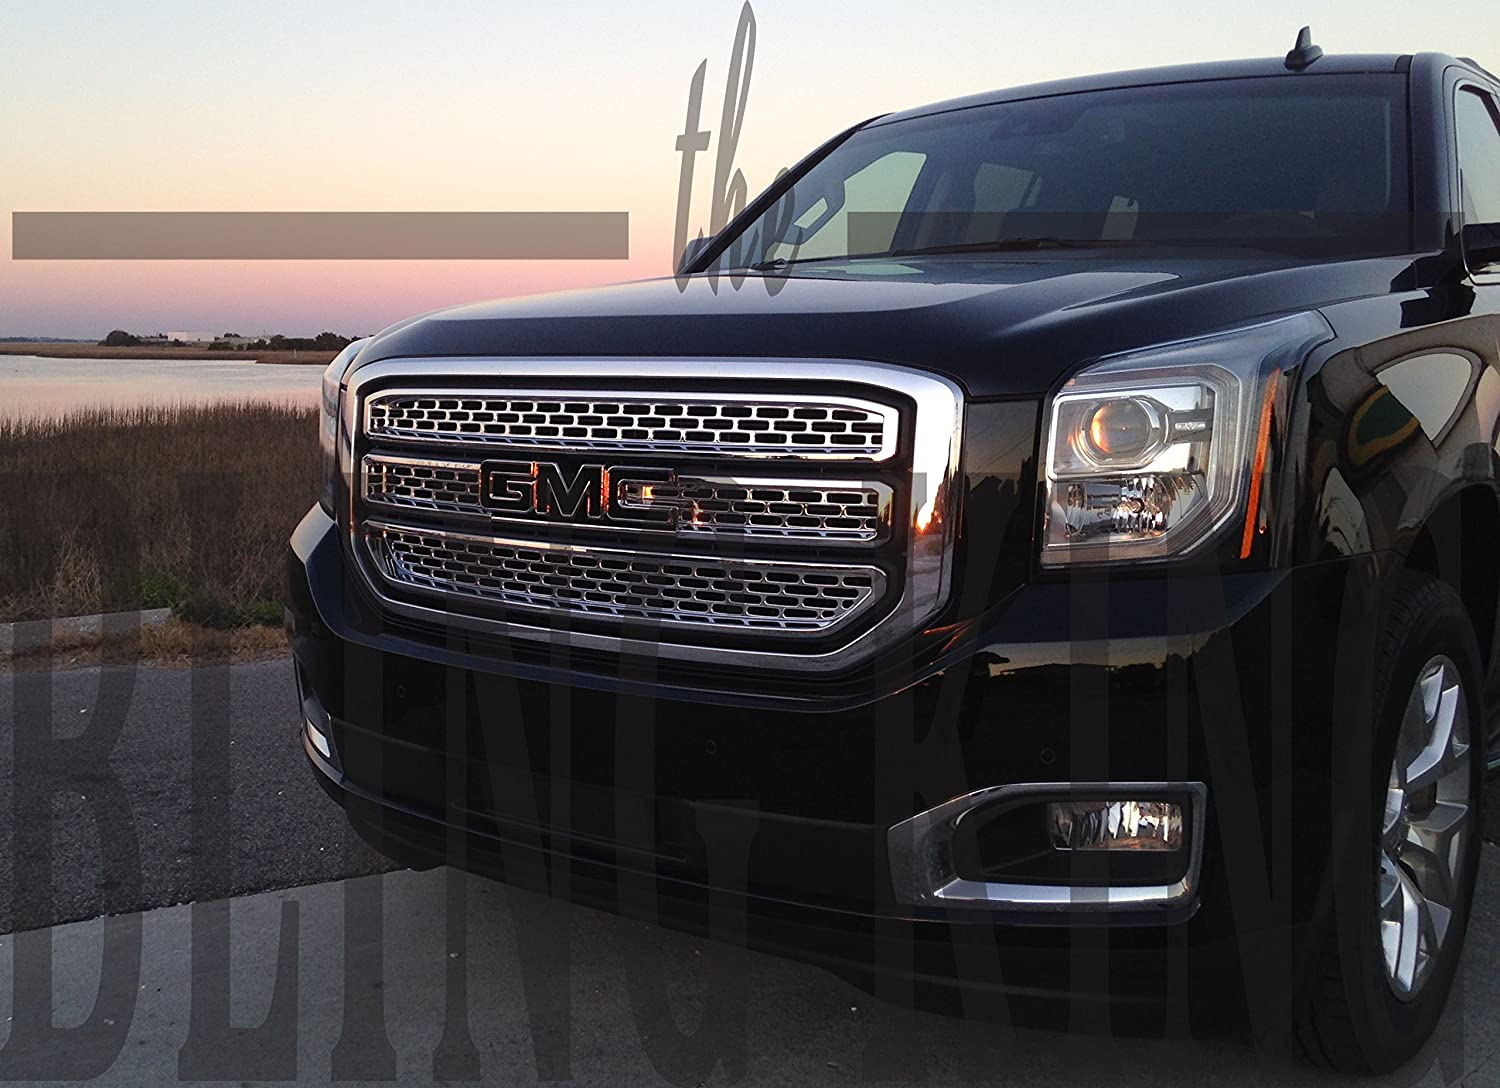 automobiles for xl family superjumbo york slides too times slt denali slide autoreviews room new the bodyguards image review gmc and yukon